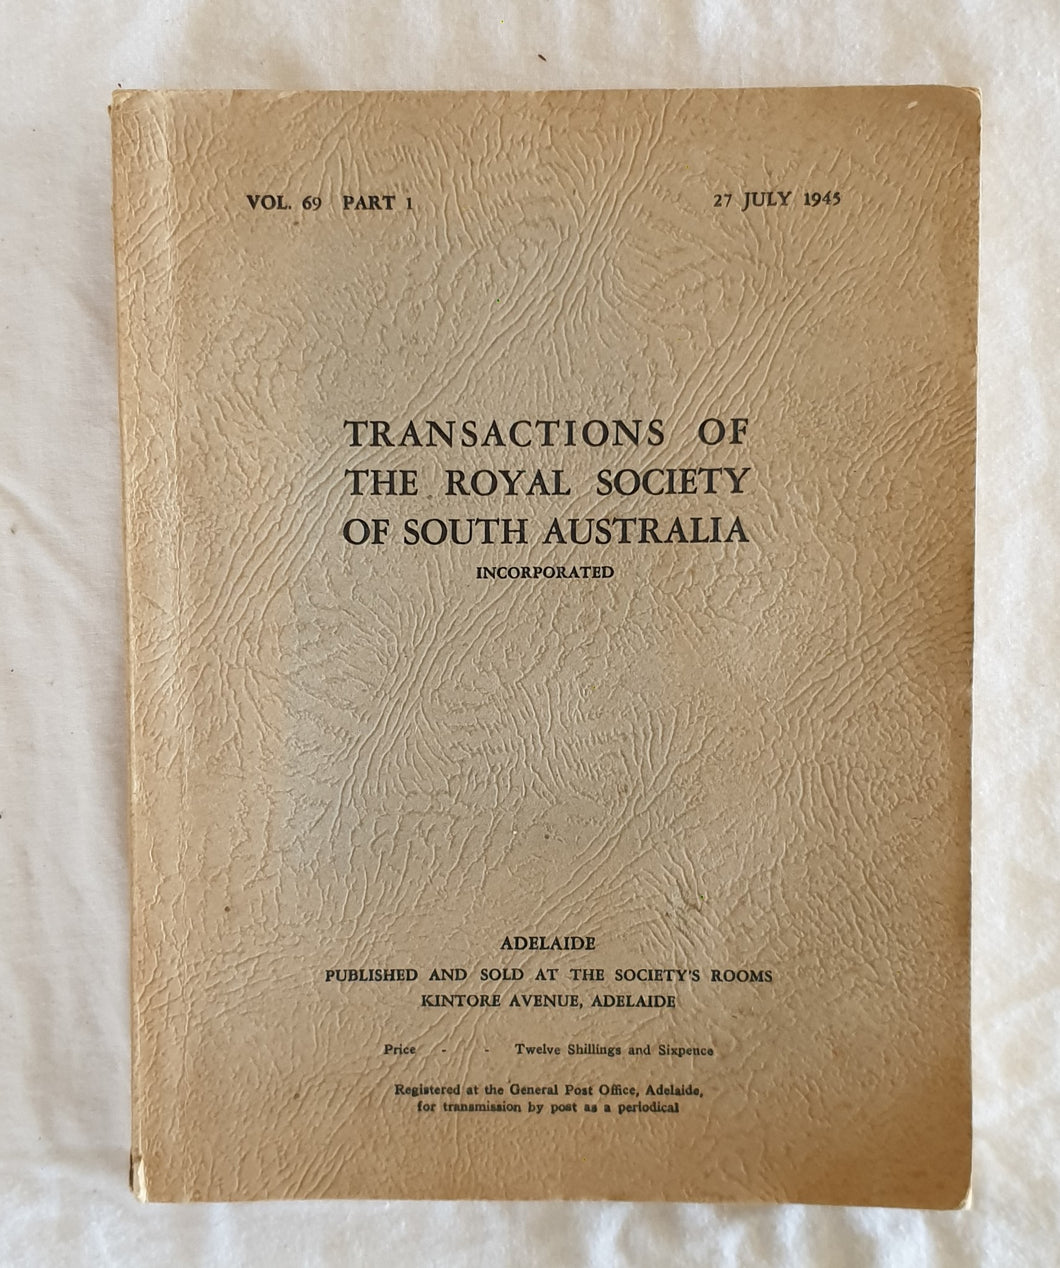 Transactions of The Royal Society of South Australia  Vol. 69 Part 1